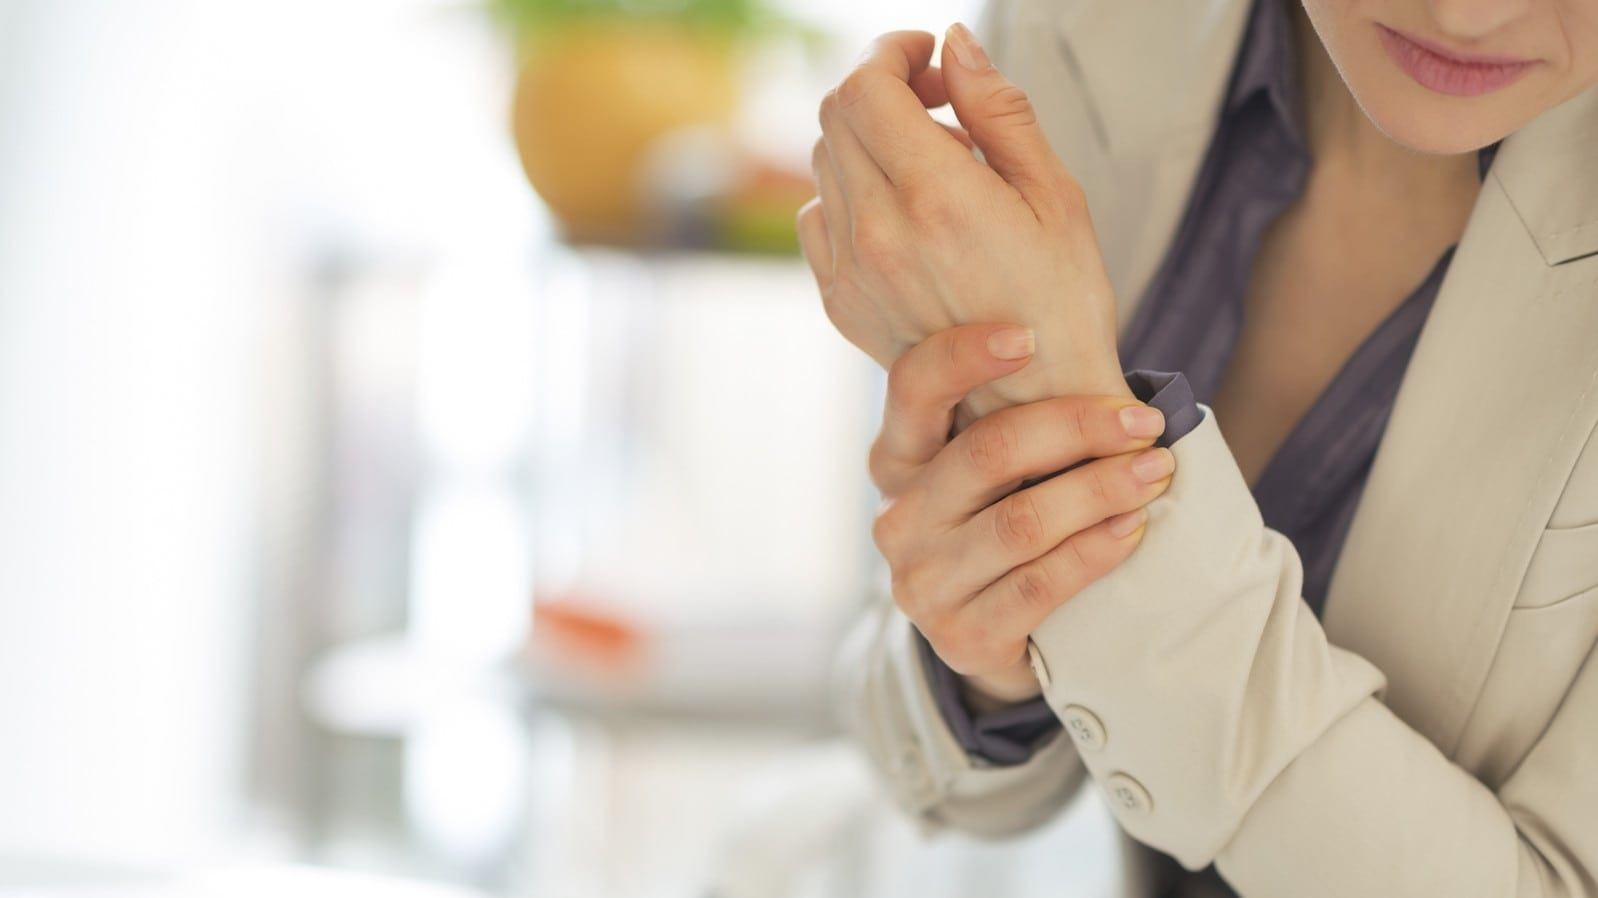 Young Female Worker With A Wrist Injury Stock Photo